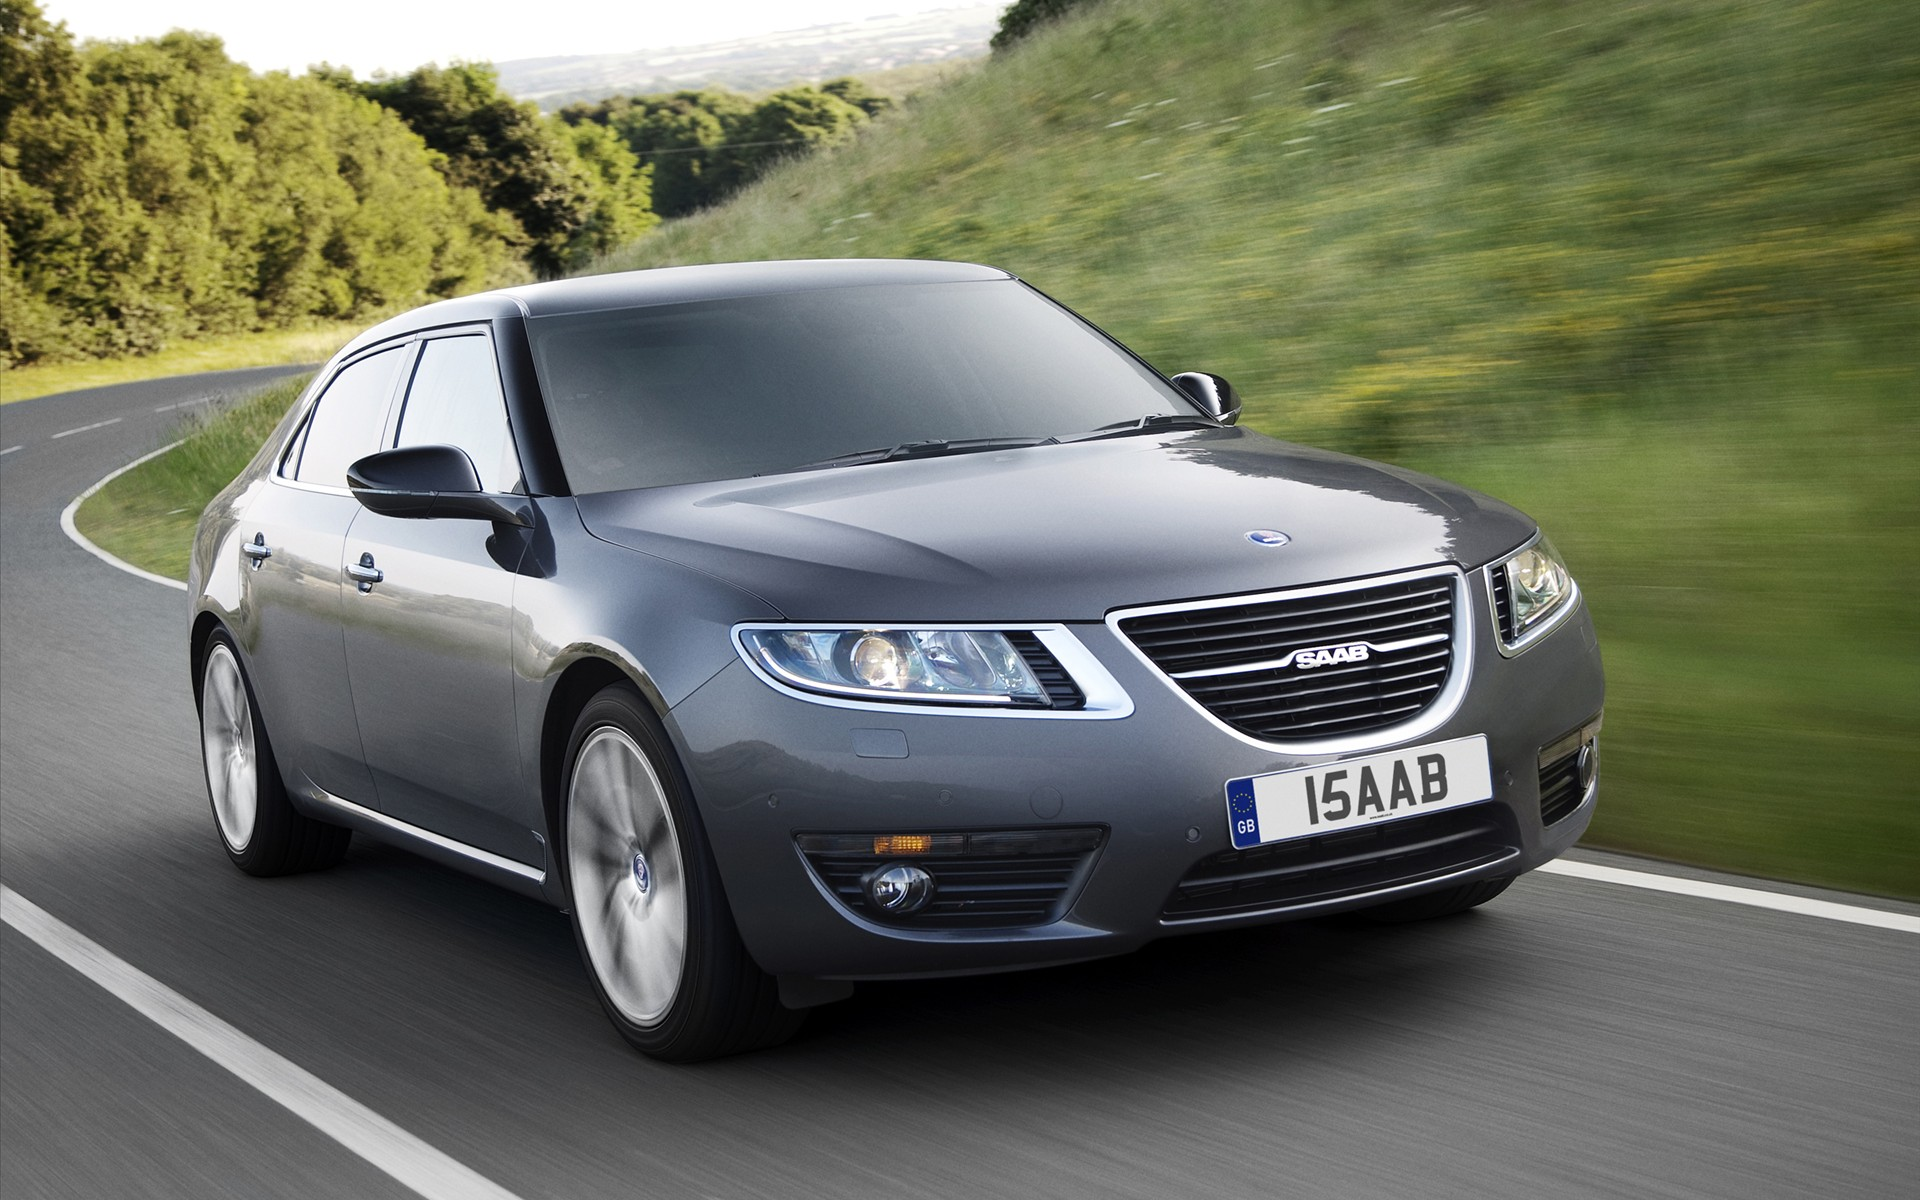 China's Hawtai Motor Group comes to the rescue of Saab